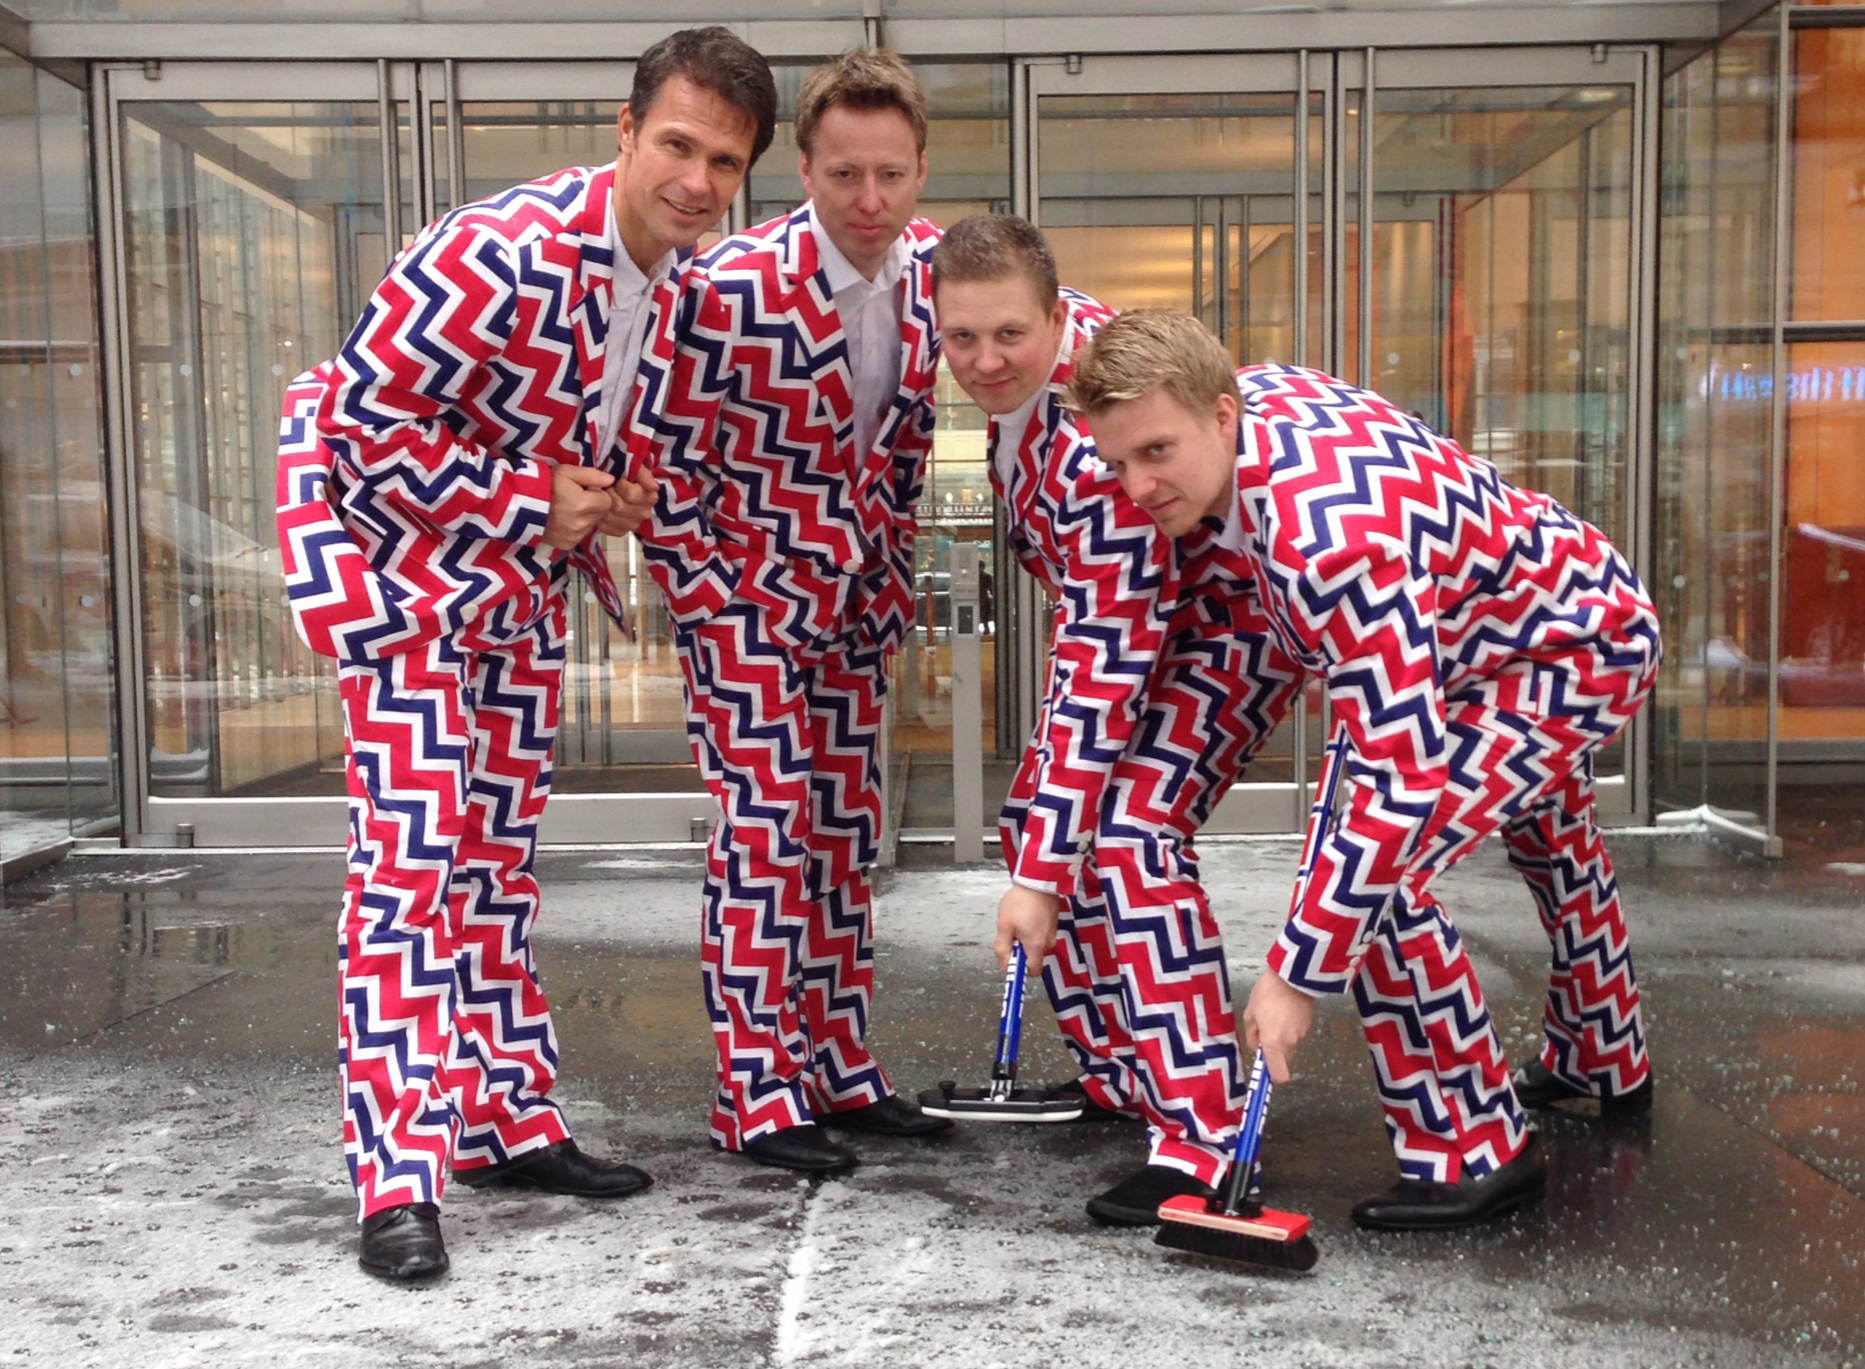 If Norway's curling team fails to win a gold medal, the Eurovision Song Contest beckons.